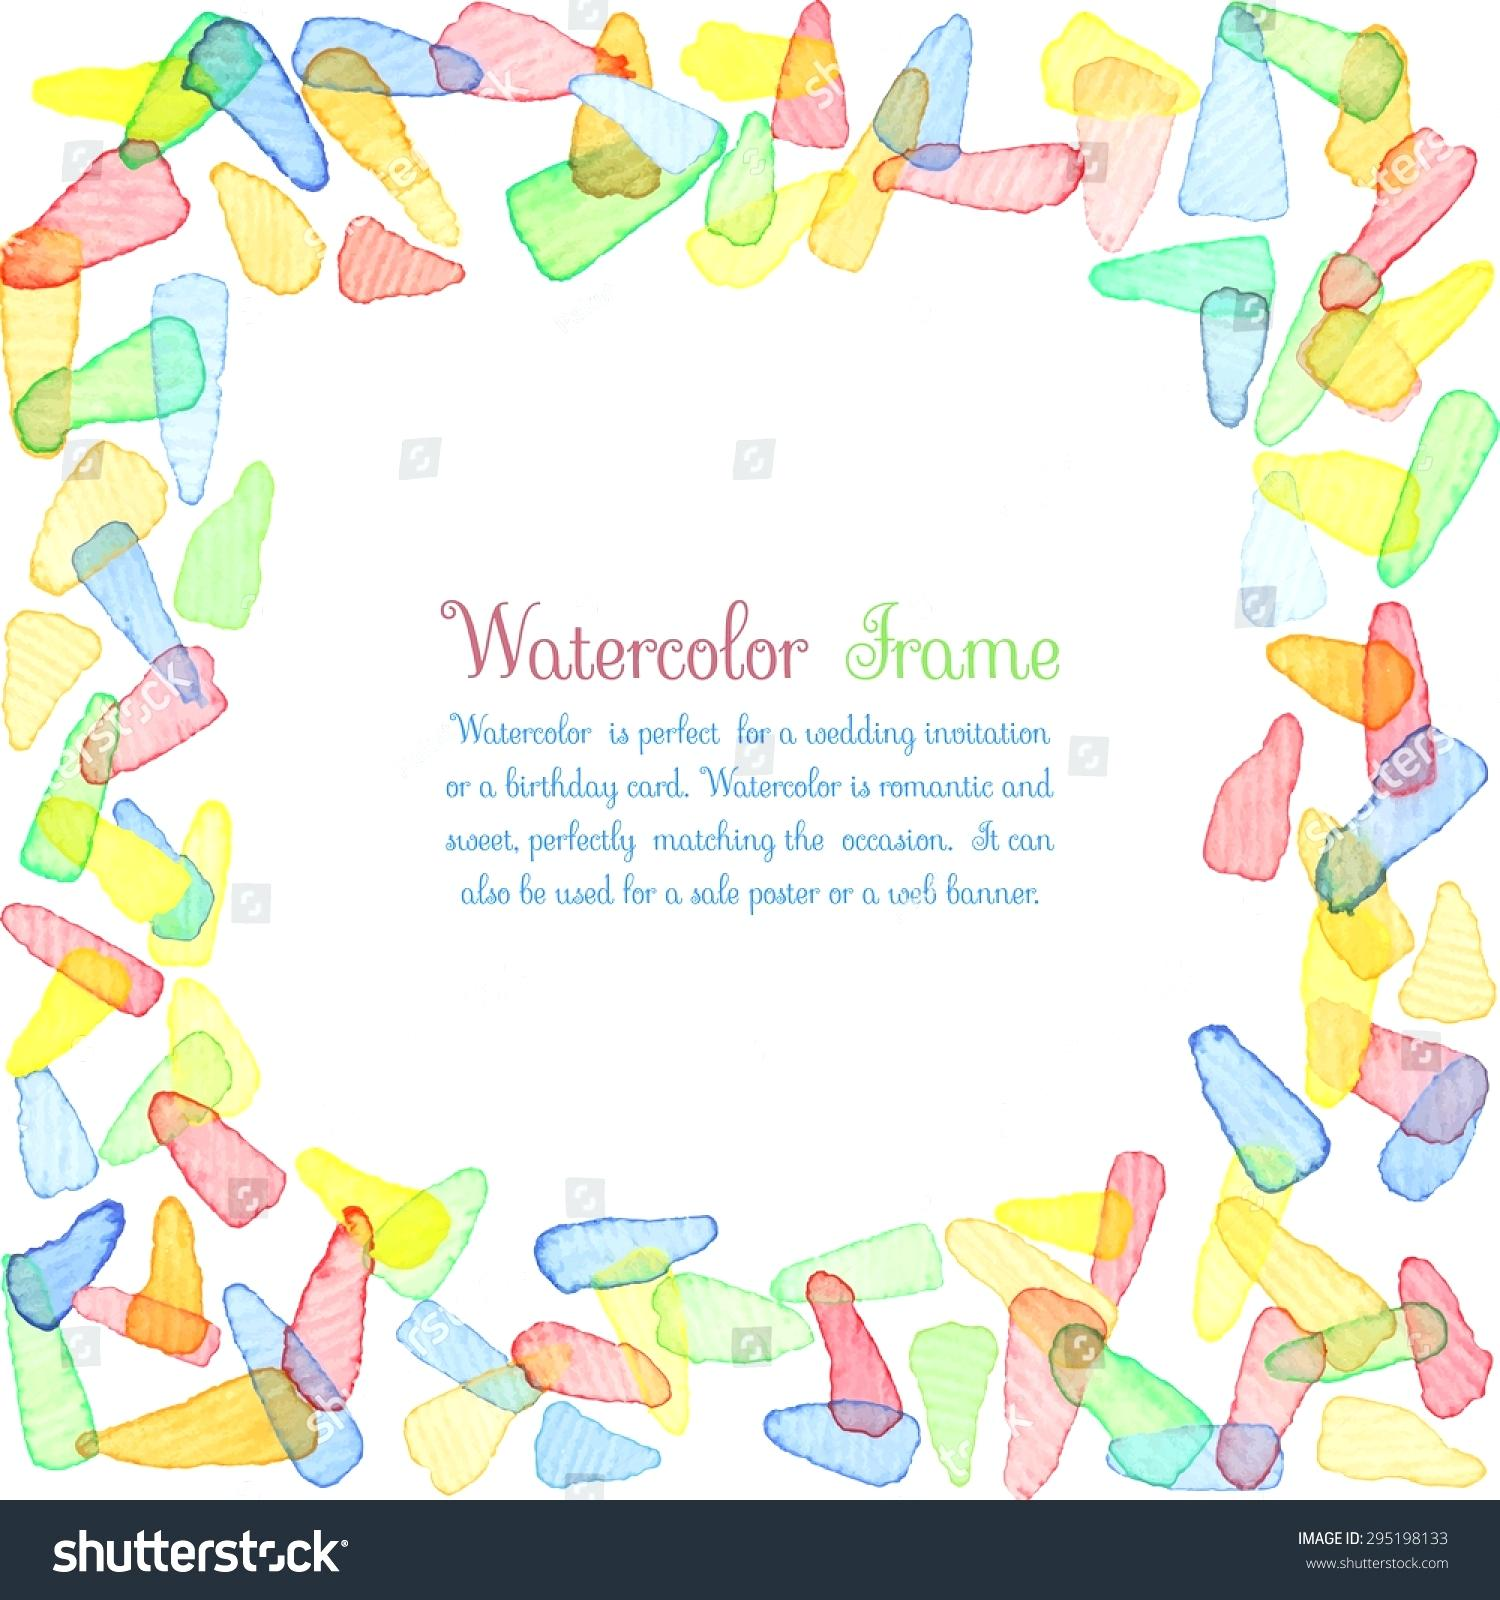 birthday border templates for word ; birthday-border-template-hand-painted-water-color-frame-with-text-cute-decorative-bright-colorful-panels-templates-for-word